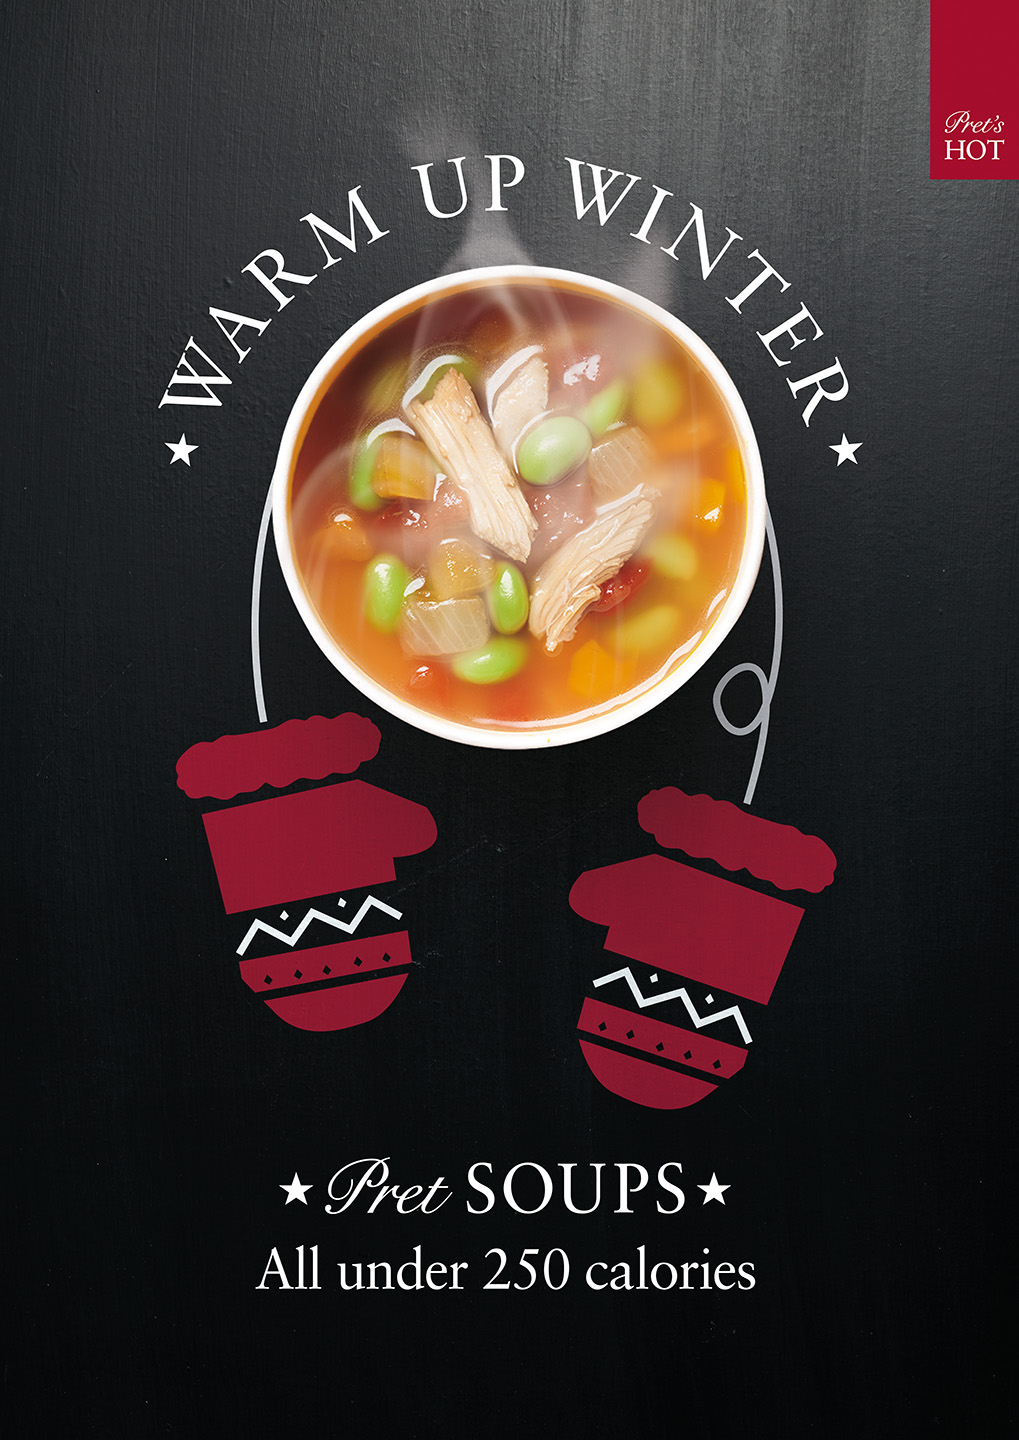 181120_UK_January Soup Campaign_Aboards_ART OL